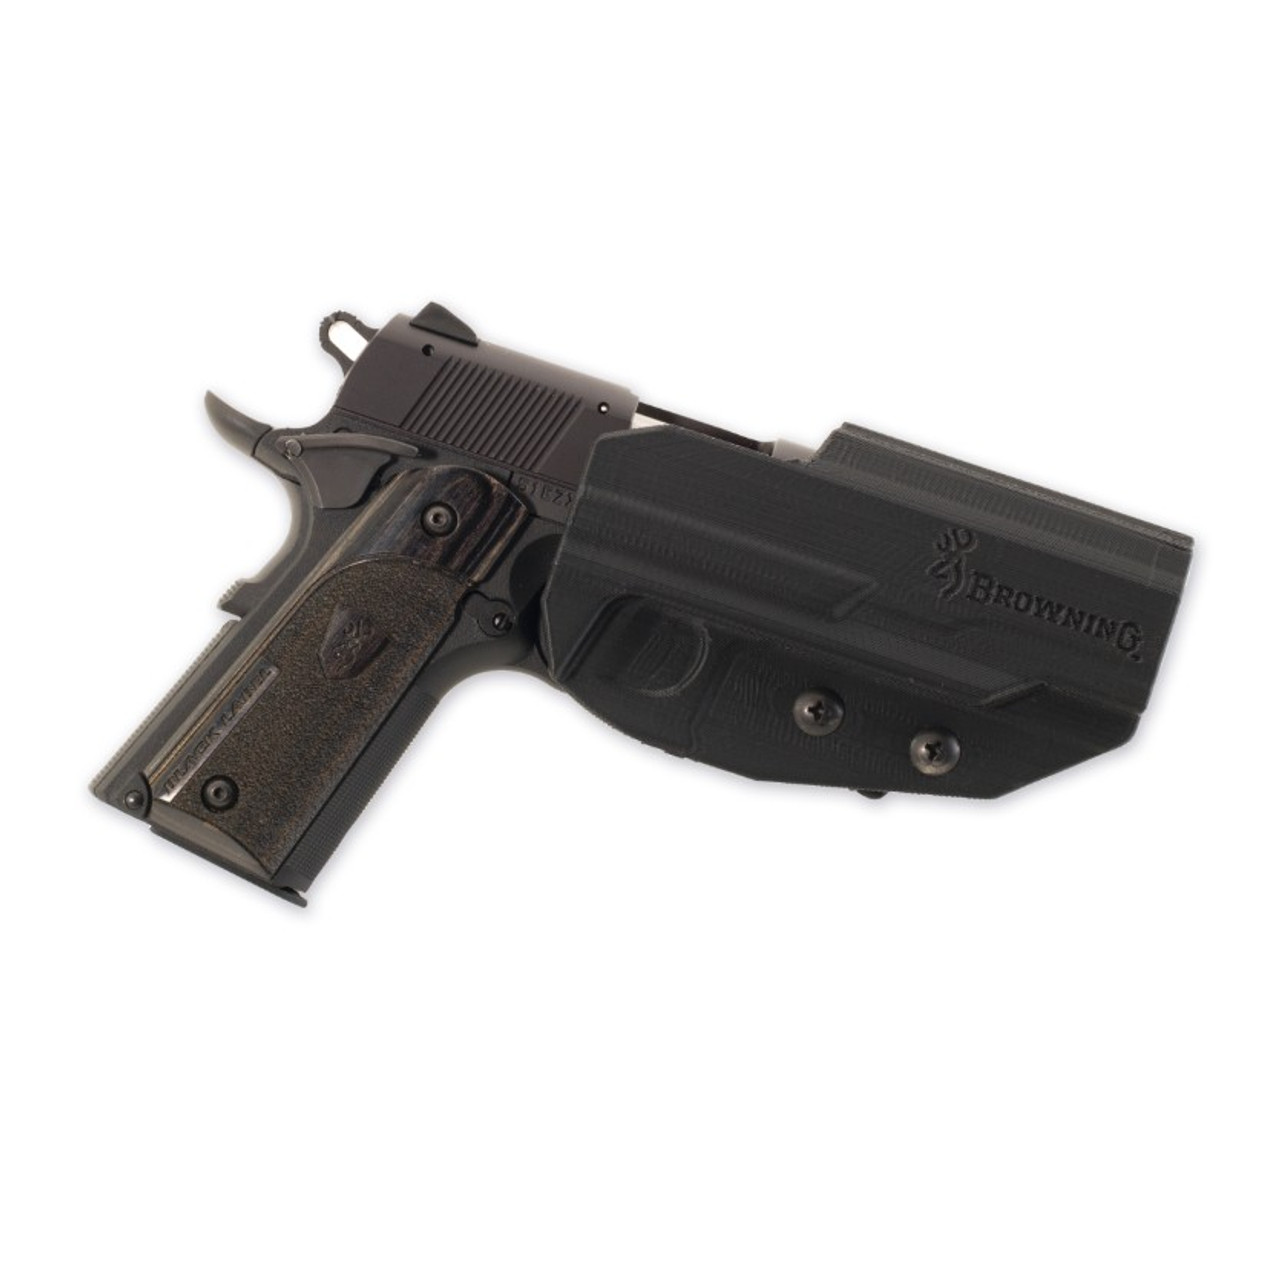 Browning 1911-22/1911-380 Lock-Pro Holster, Black